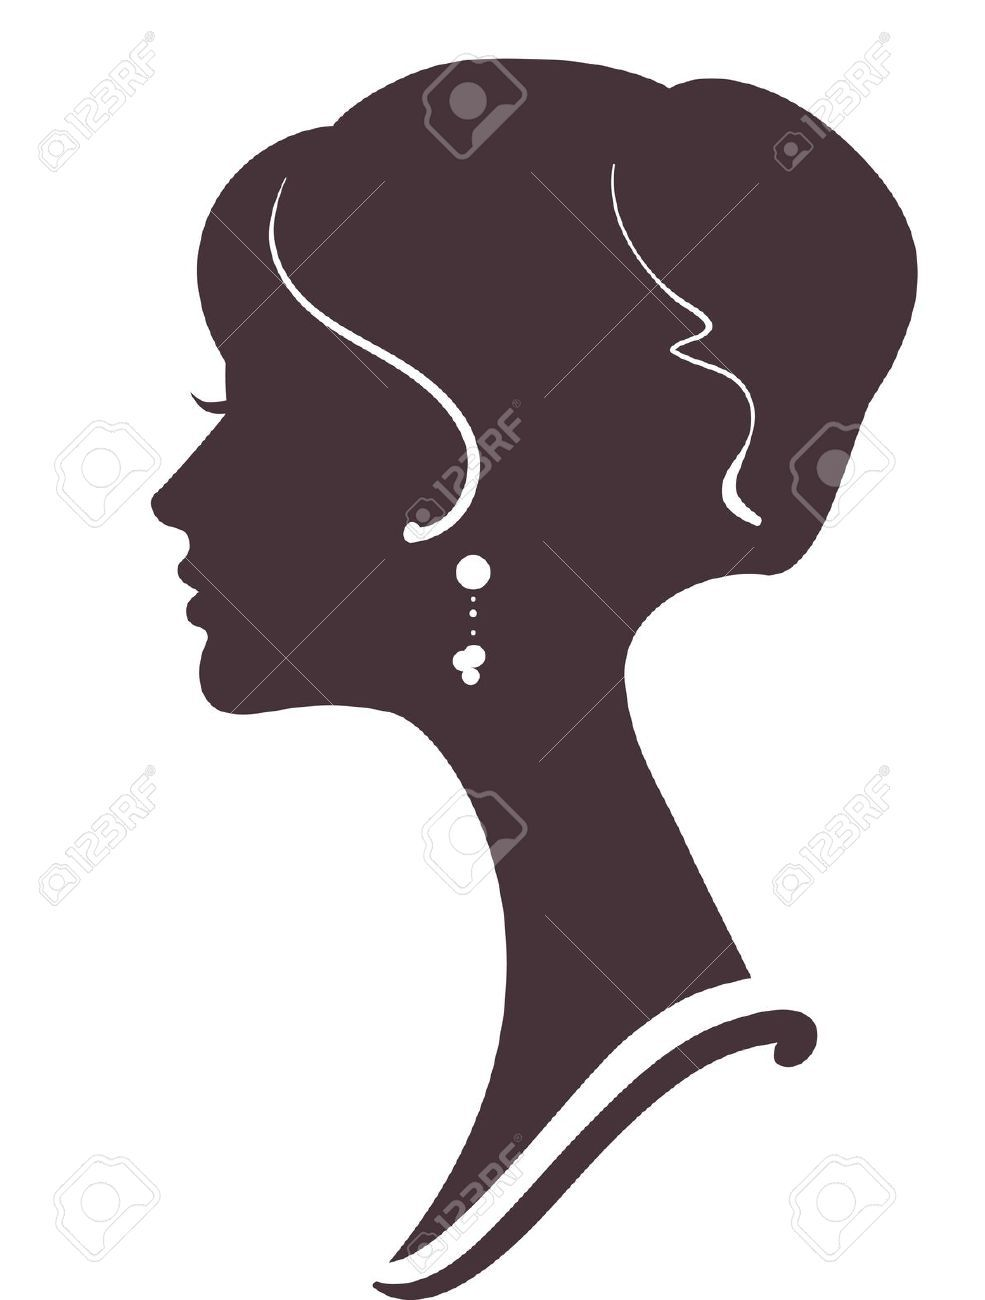 fbf514824e0 Beautiful Girl Silhouette With Stylish Hairstyle Royalty Free Cliparts,  Vectors, And Stock Illustration. Image 12495494.